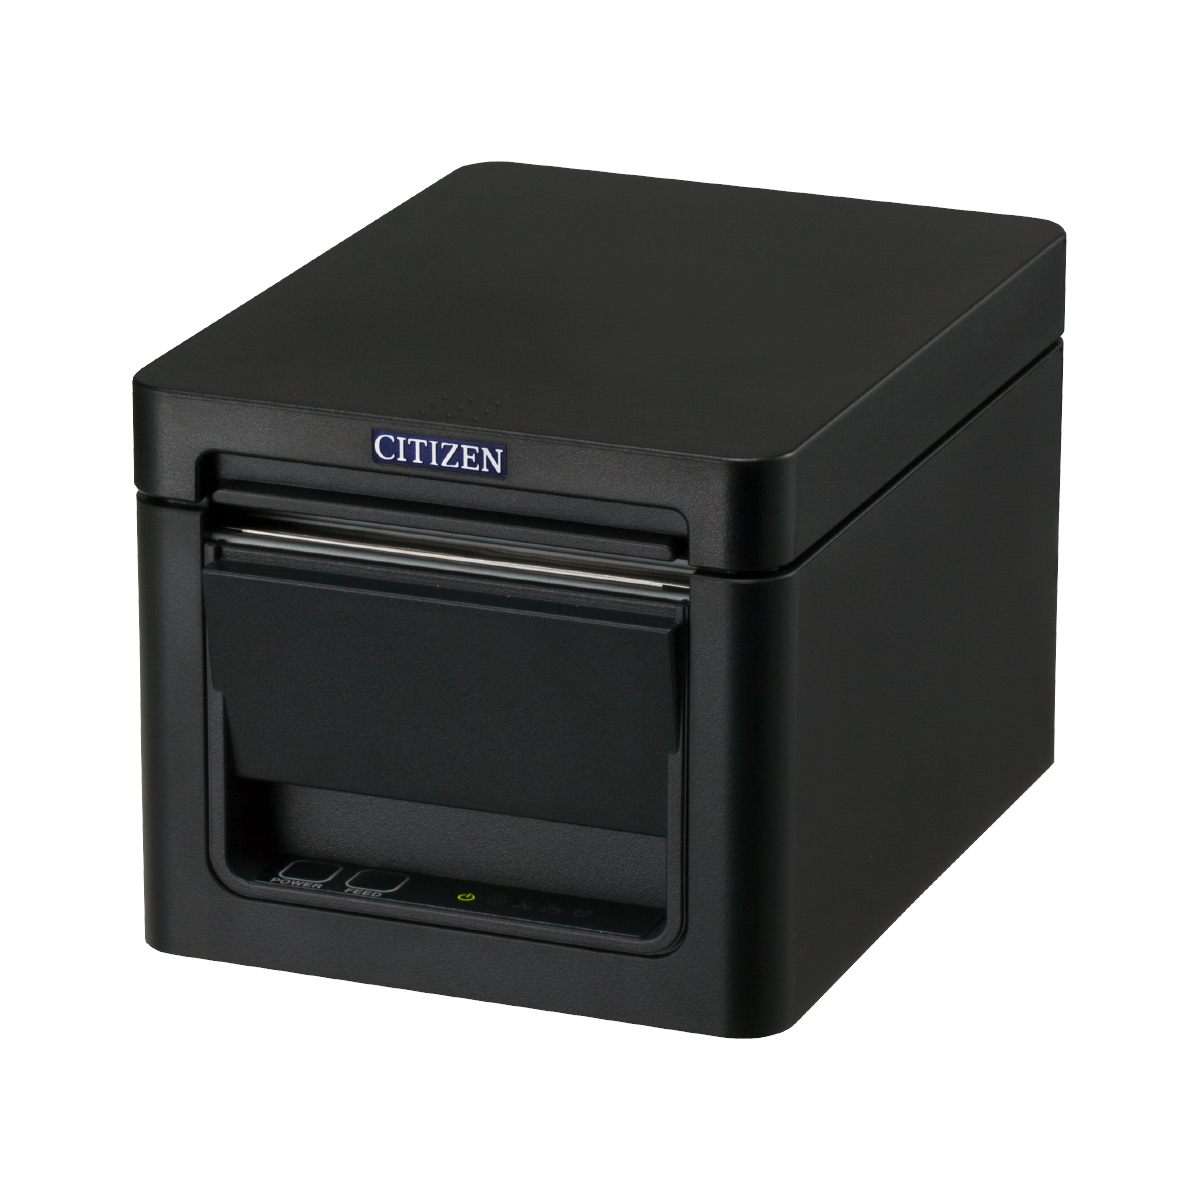 Citizen CT D150 Thermal Printers